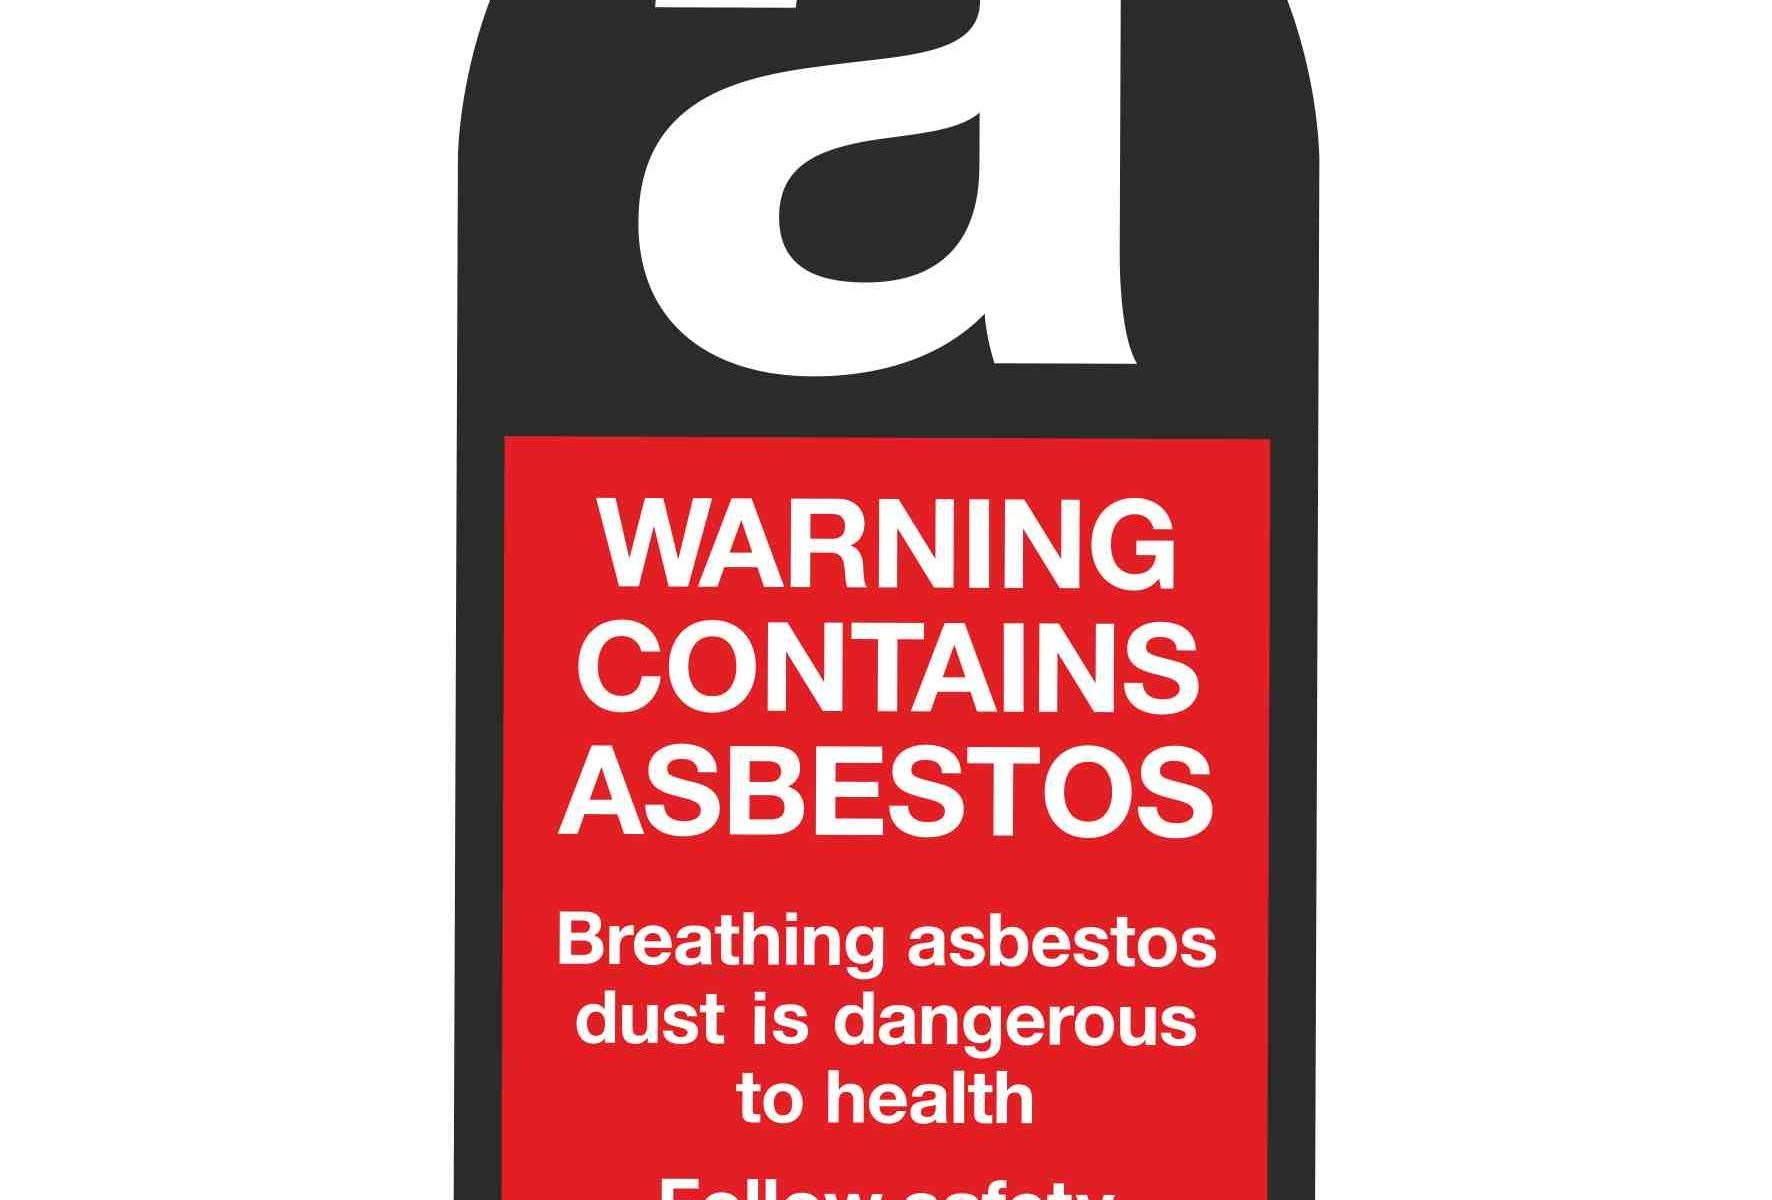 WARNING CONTAINS ASBESTOS Breathing asbestos dust is dangerous to health Follow safety instructions